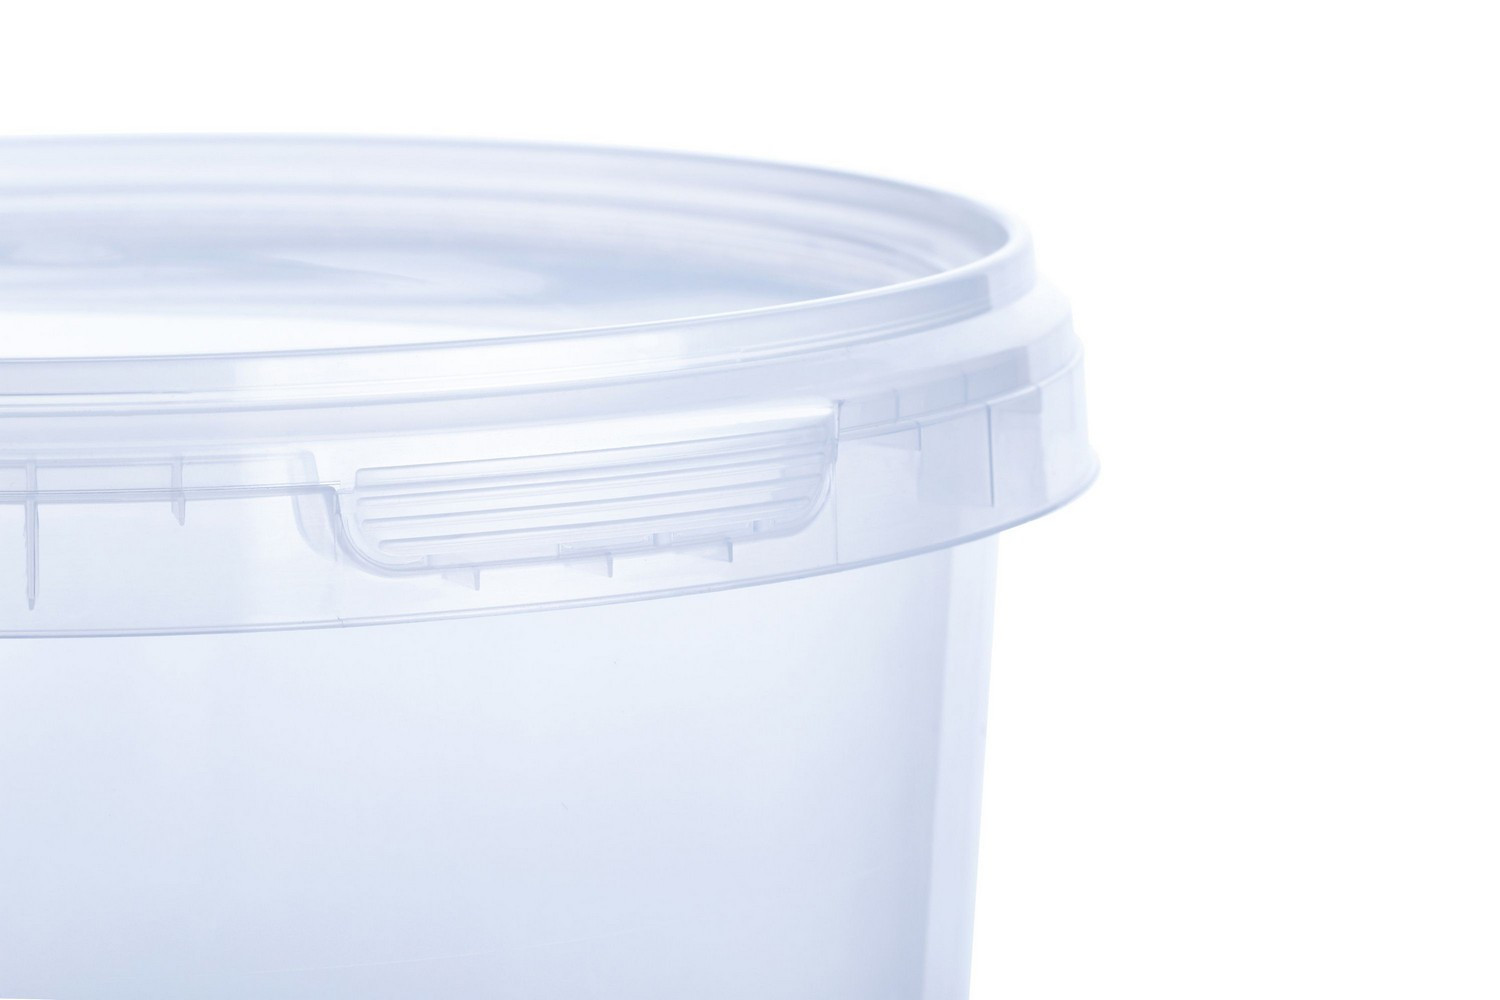 Round PP transparent or colored buckets 2300 ml with tamper evedence Europe